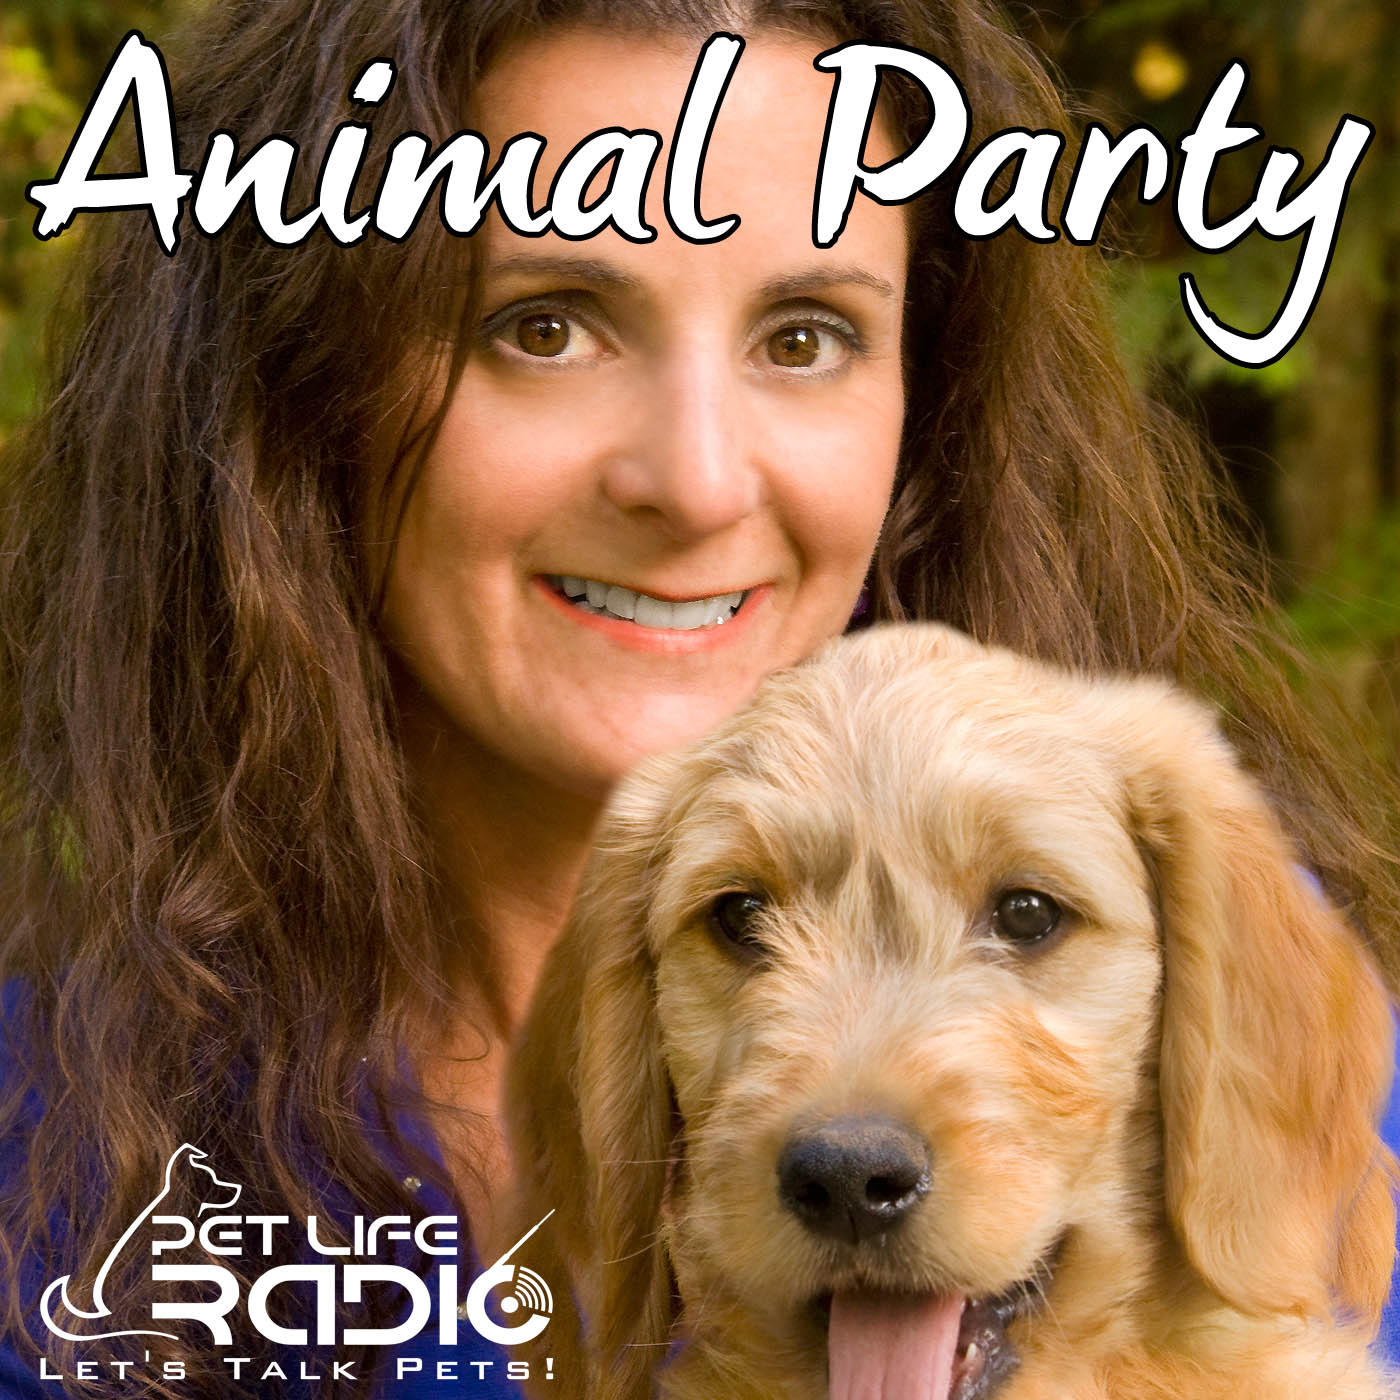 Animal Party -  Dog & Cat News, Animal Facts, Topics & Guests - Pets & Animals on Pet Life Radio (PetLifeRadio.com)